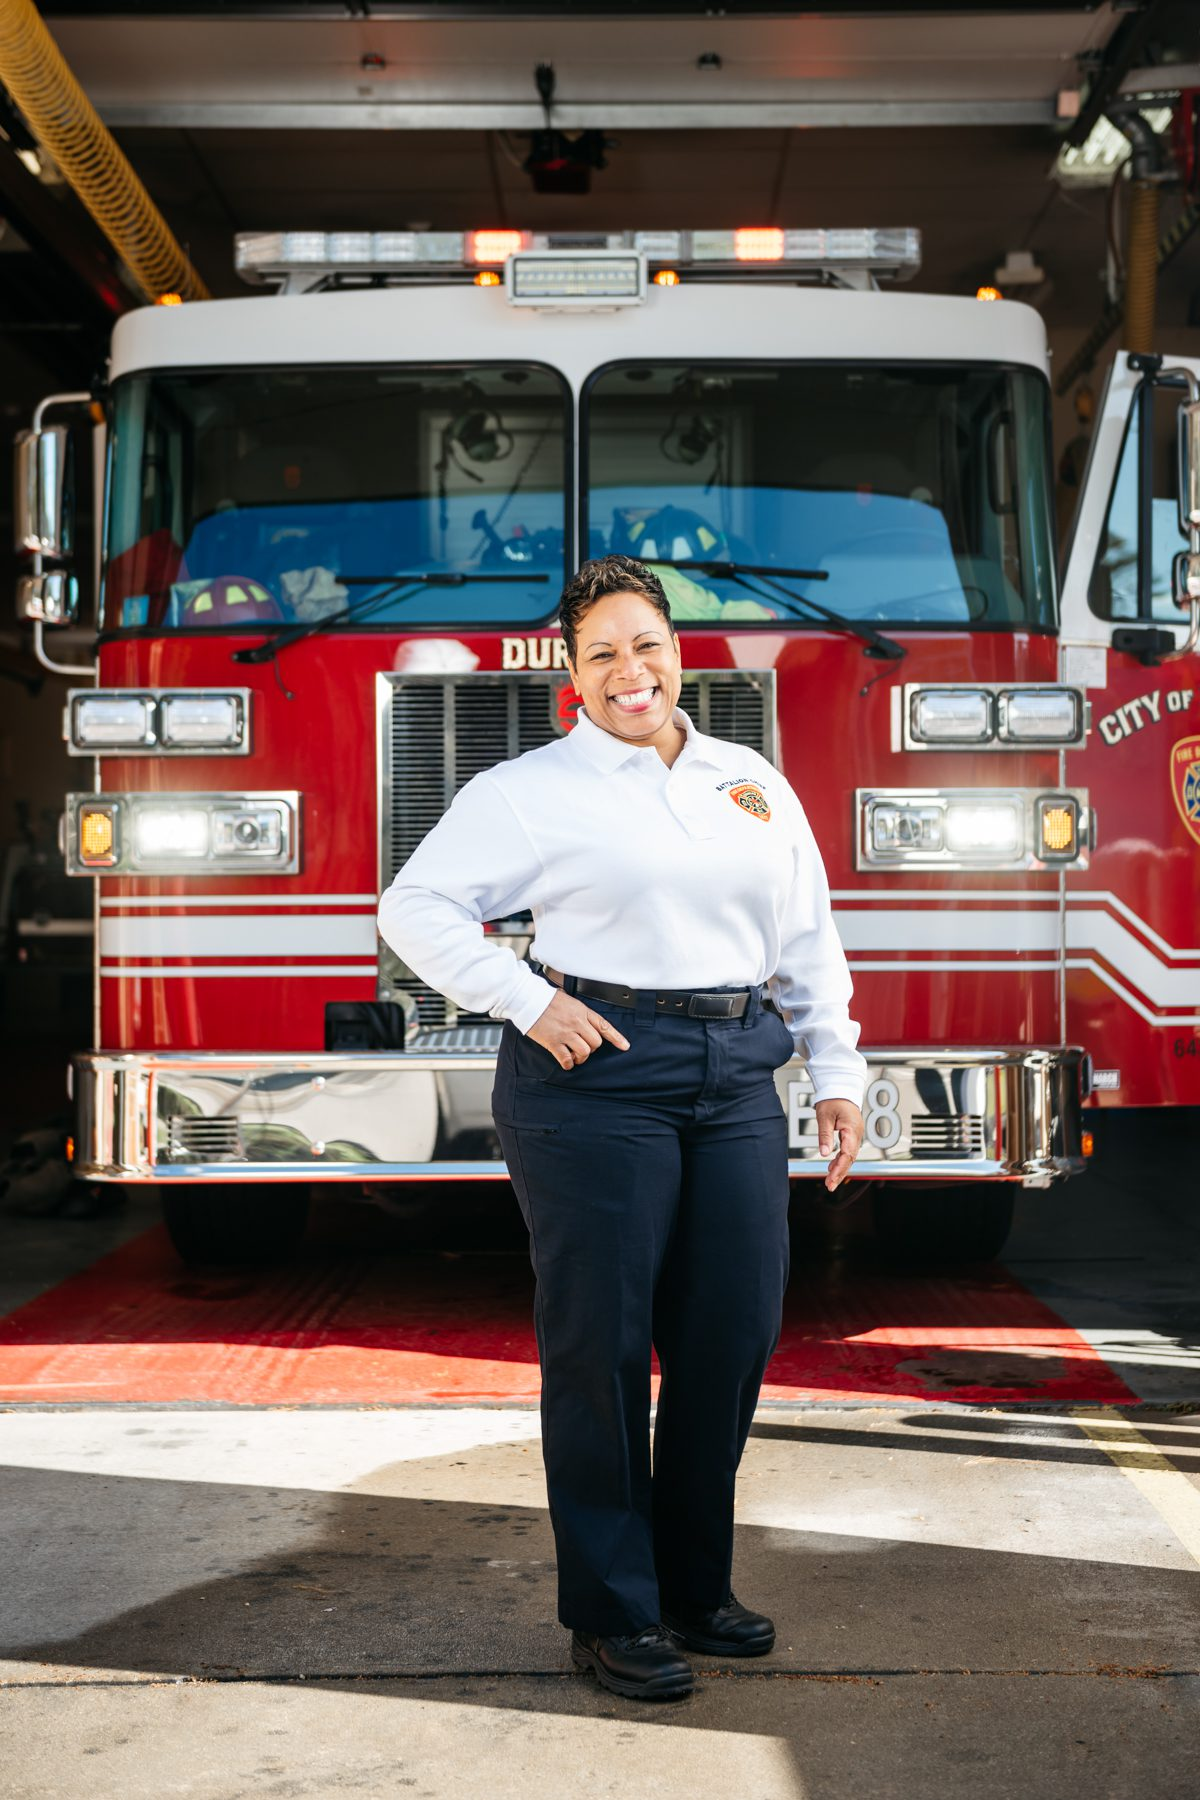 Angelica Stroud Greene standing in front of a fire truck